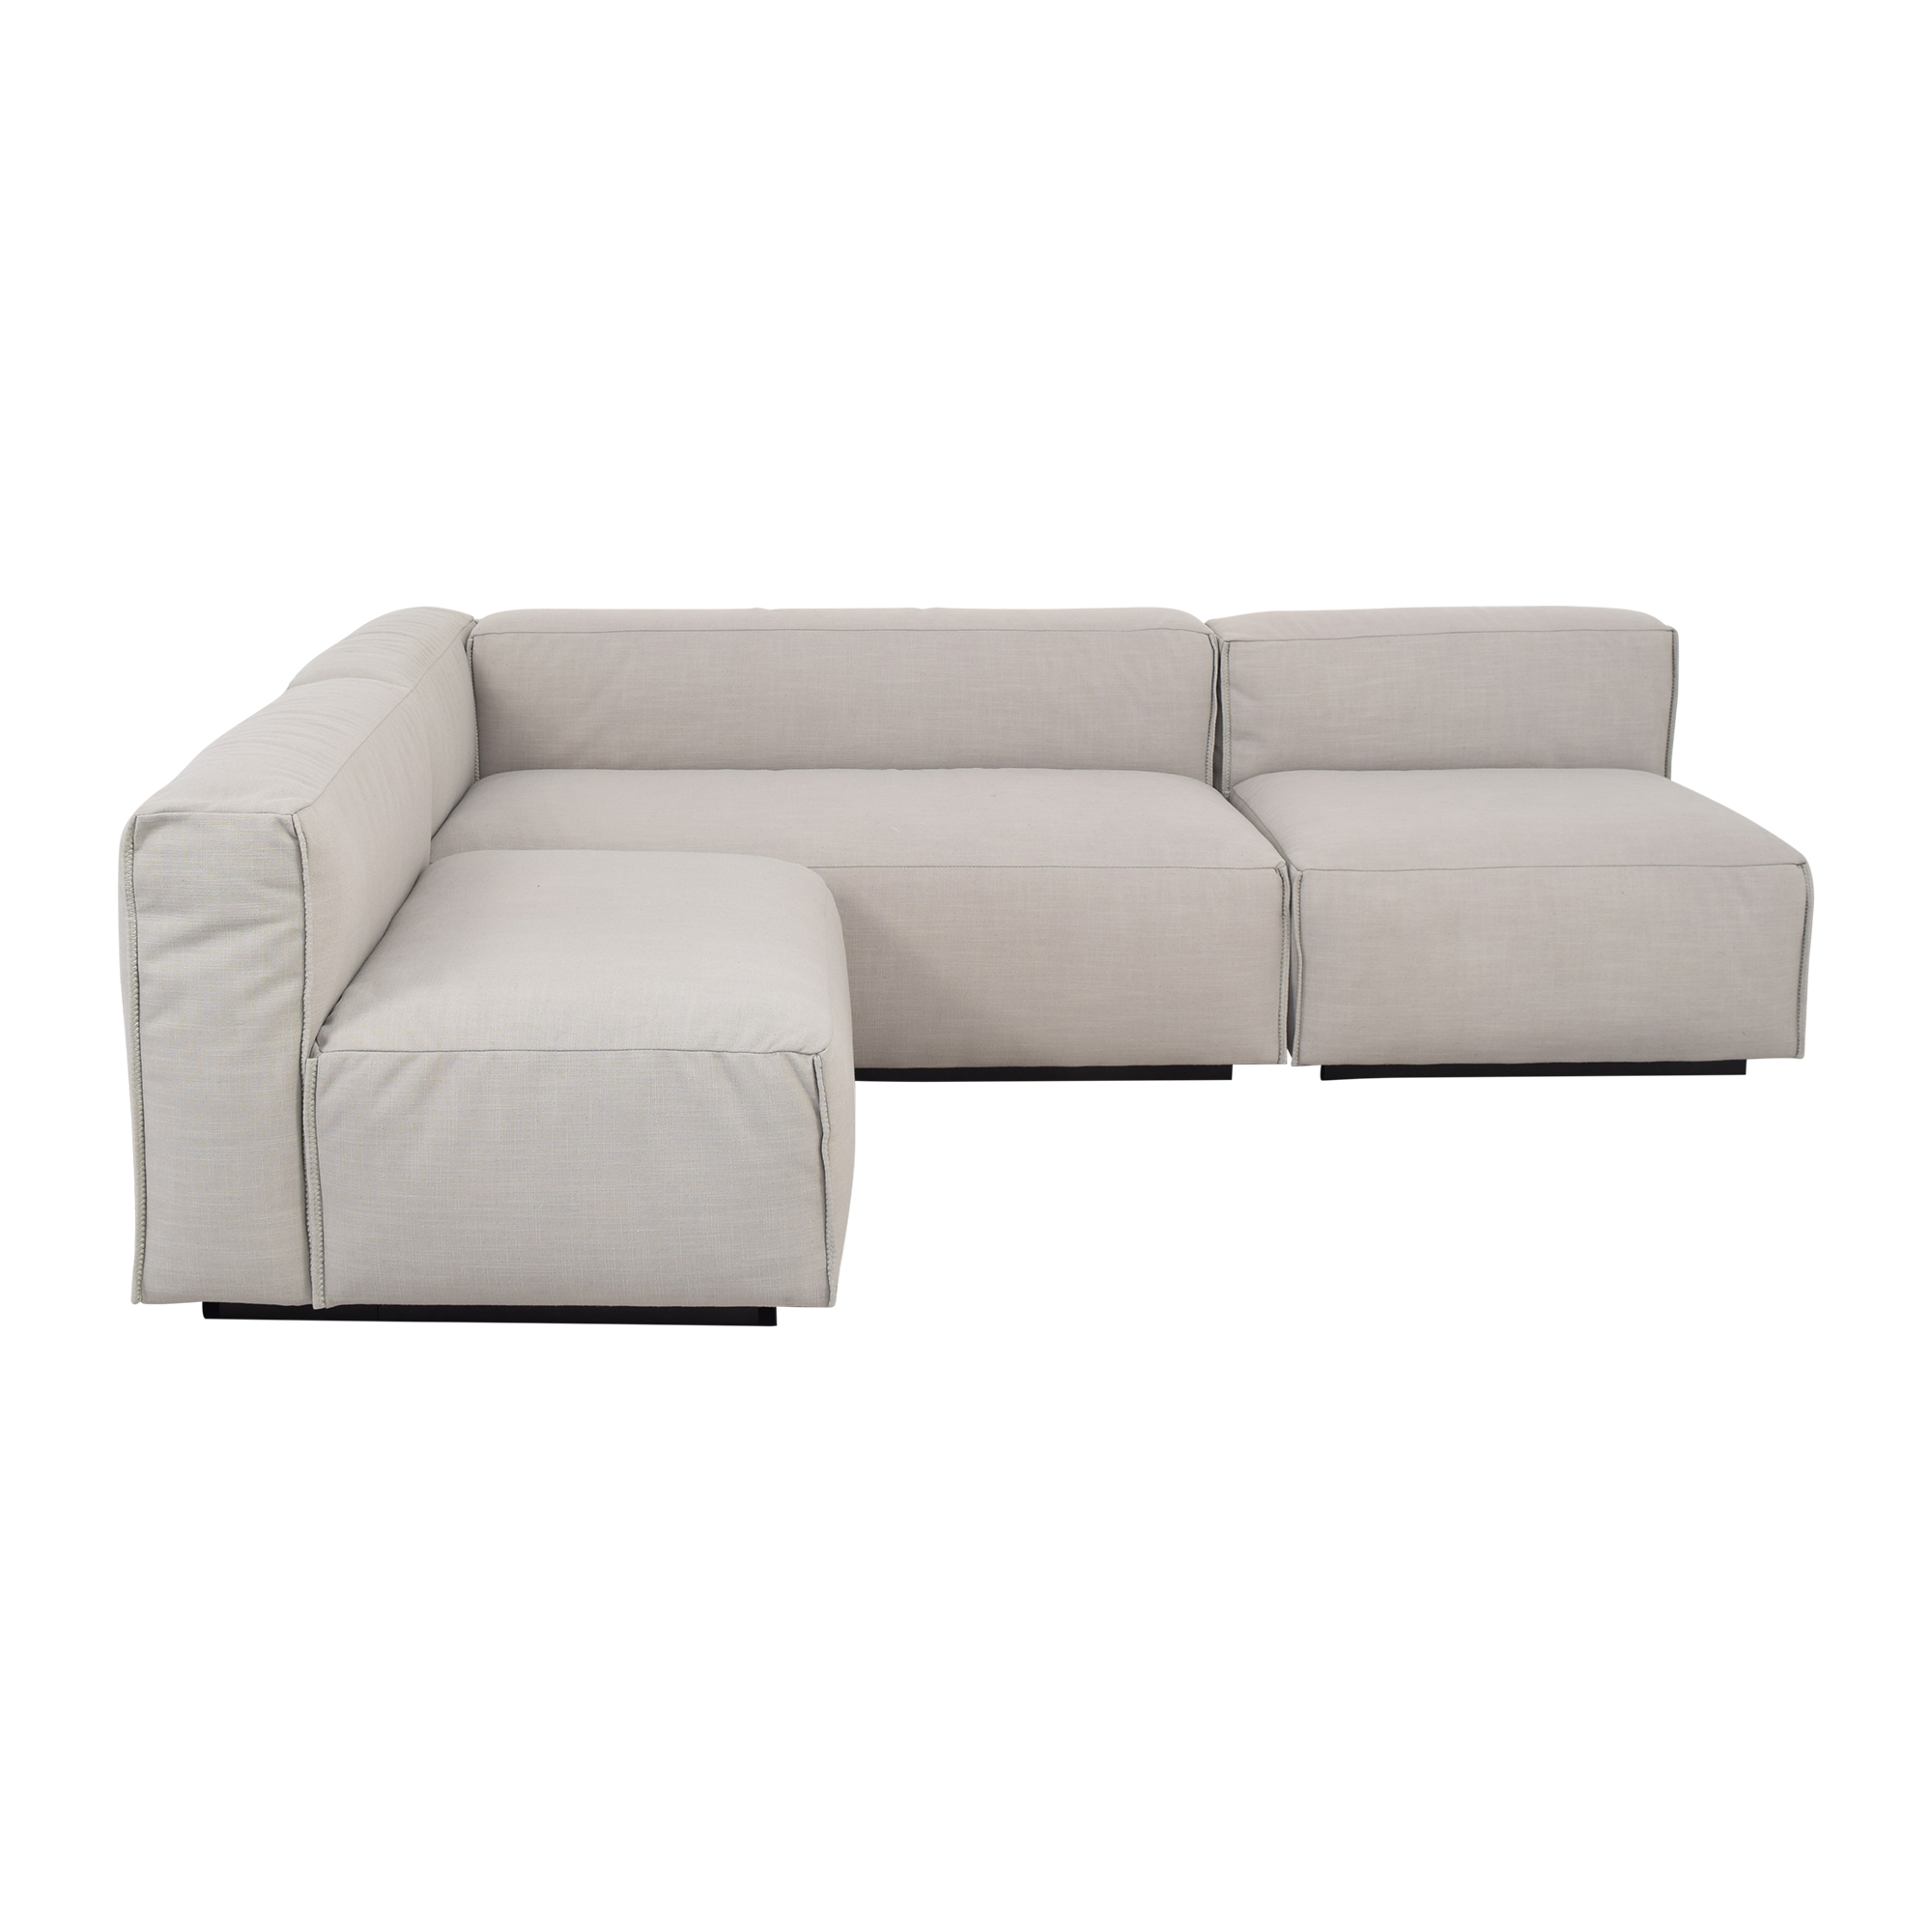 buy Blu Dot Blu Dot Cleon Medium Sectional Sofa online